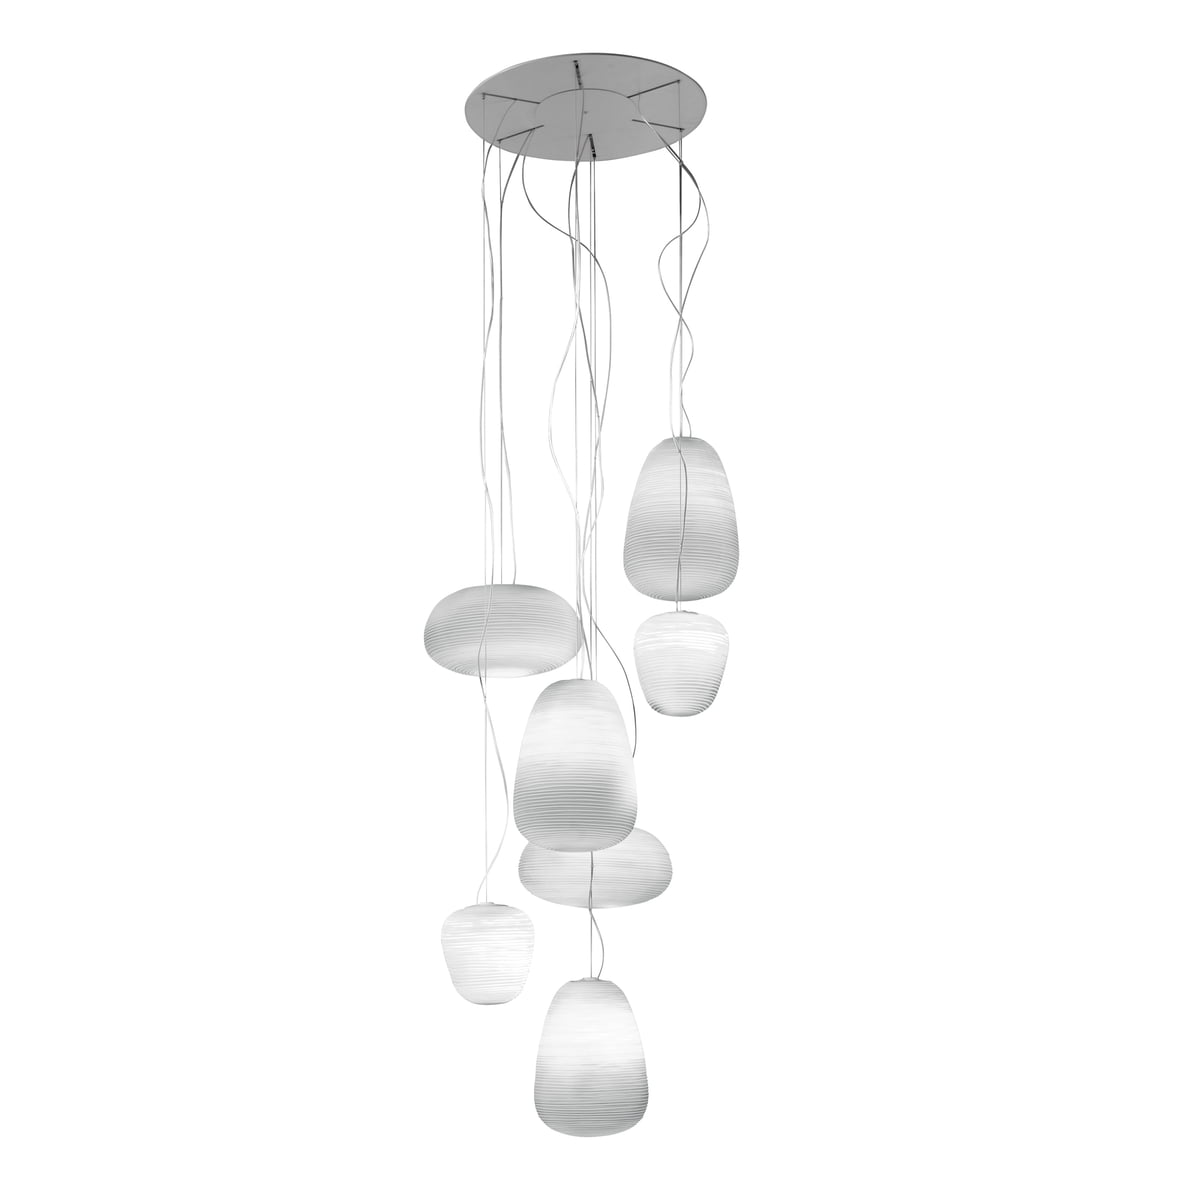 Bekend Rituals pendant lamp by Foscarini in our shop LC-57